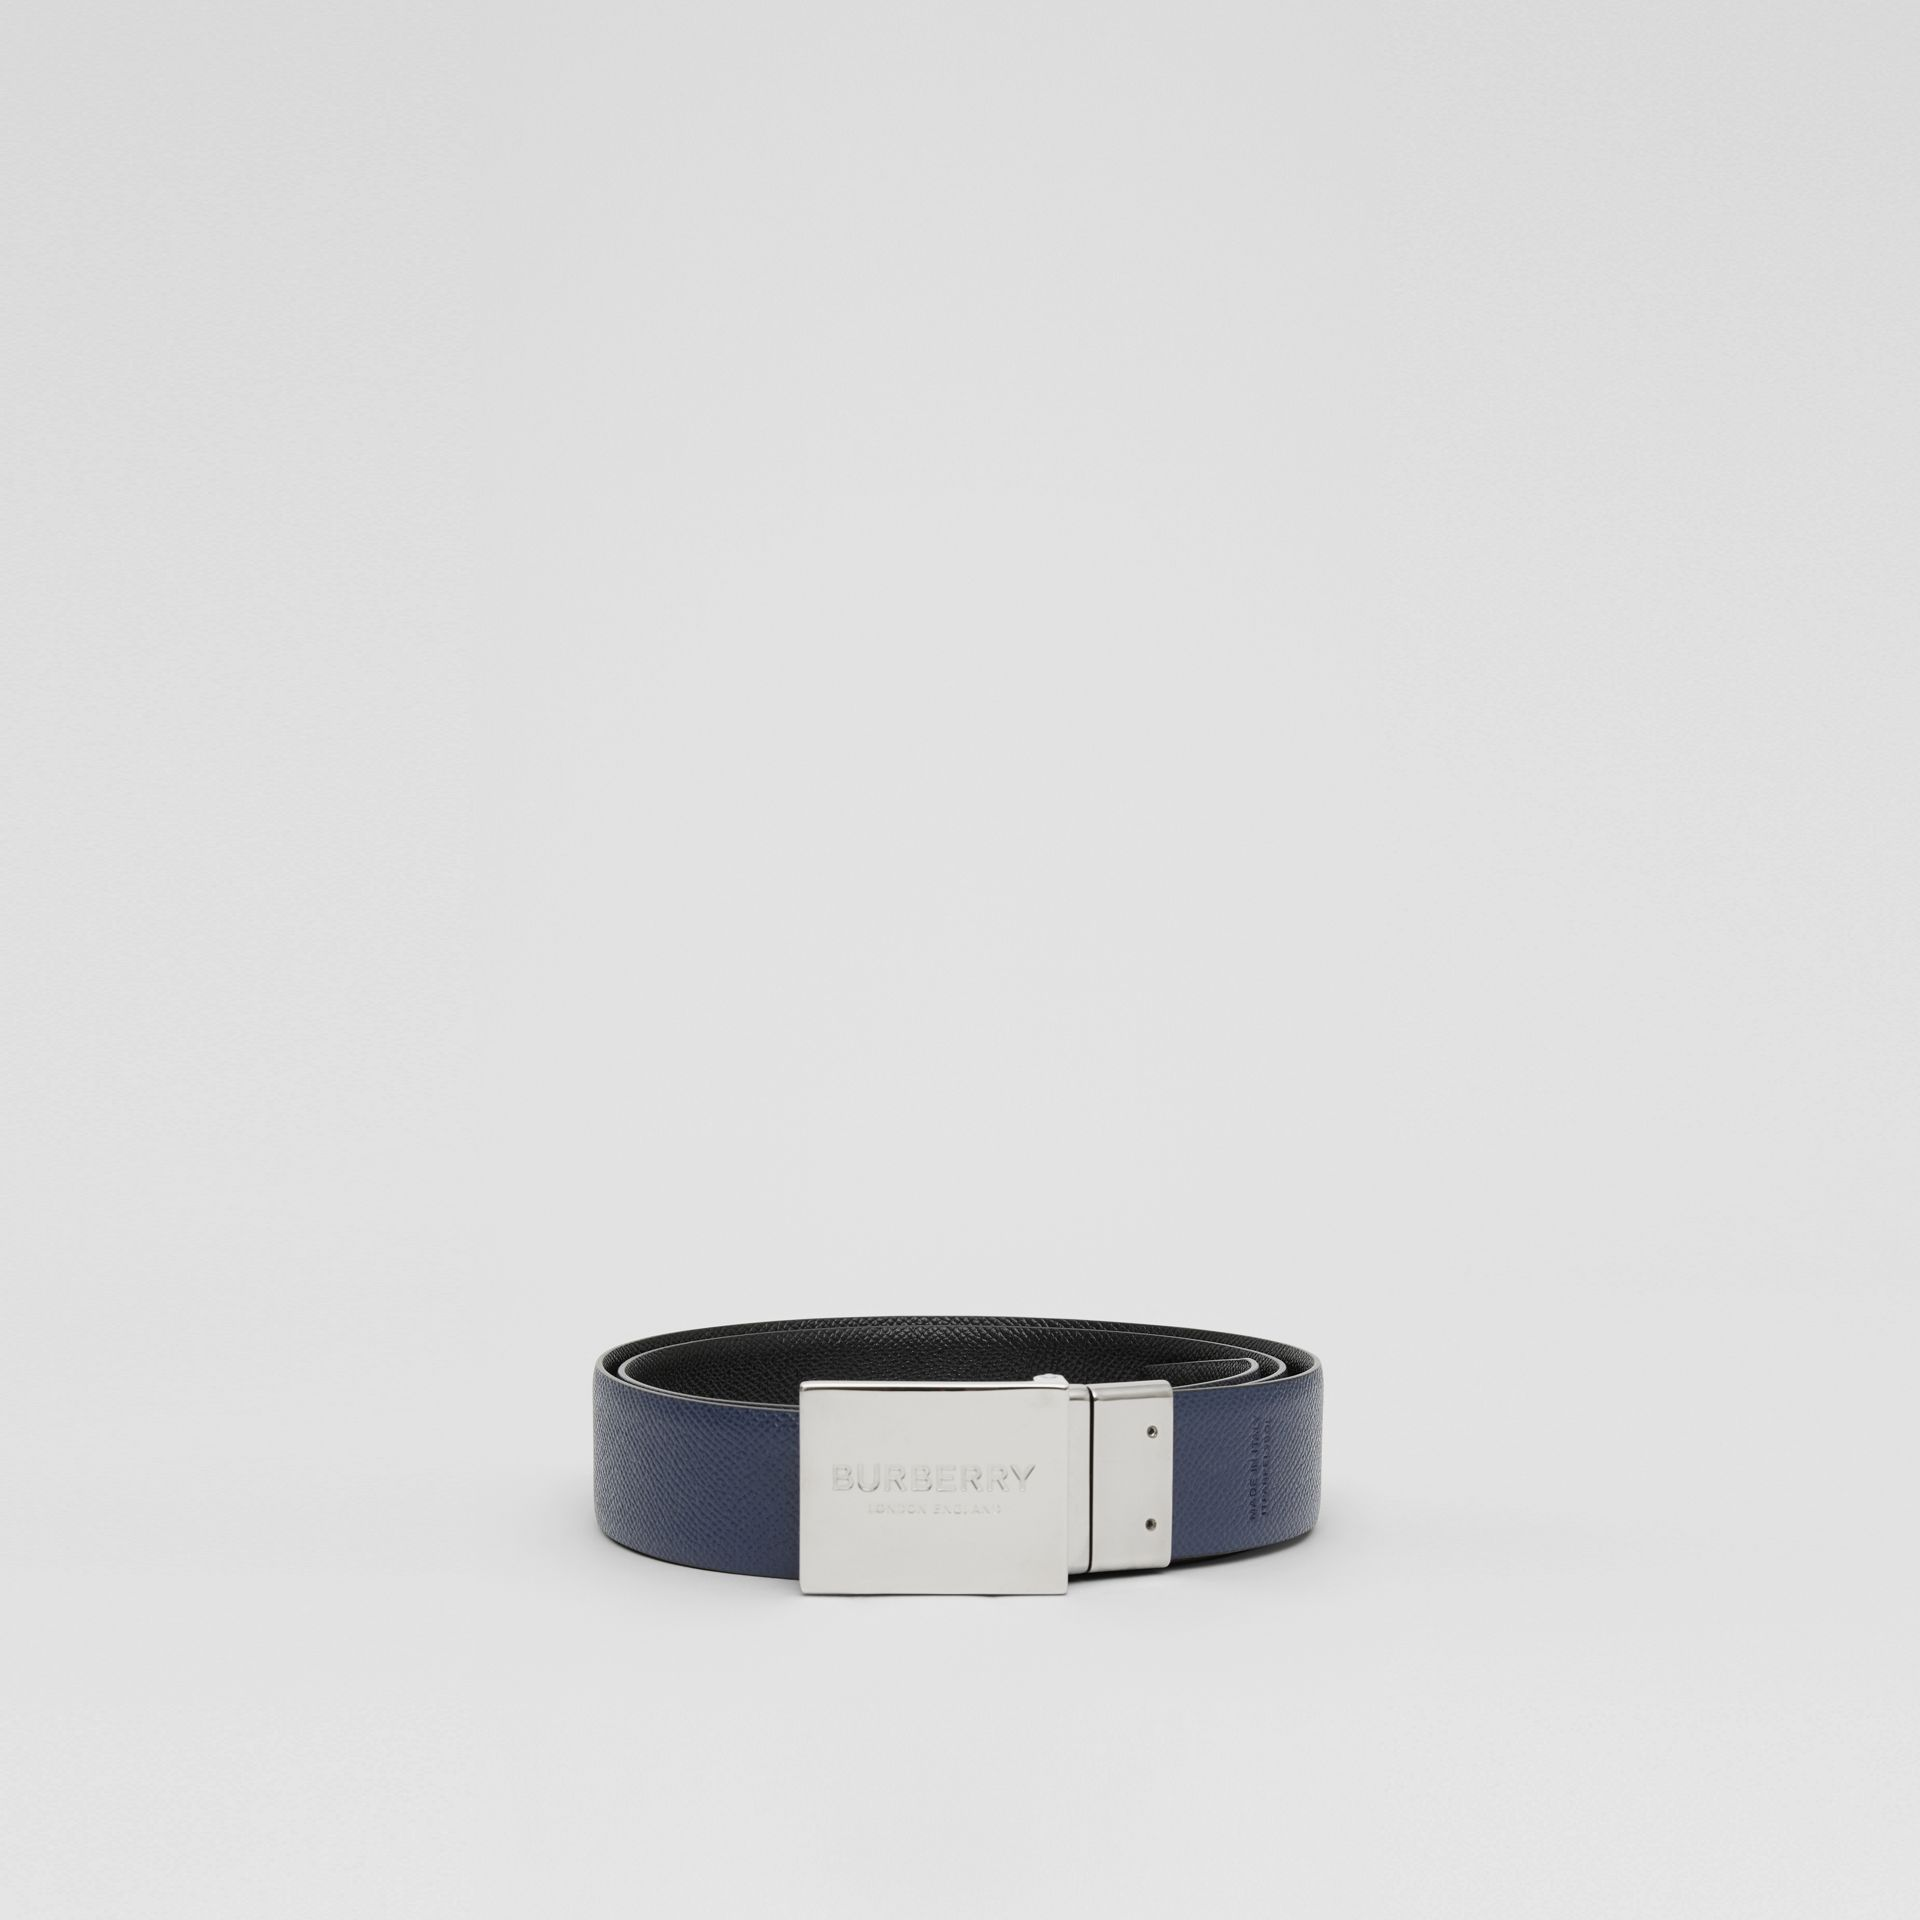 Reversible Plaque Buckle Grainy Leather Belt in Black/navy - Men | Burberry United Kingdom - gallery image 6